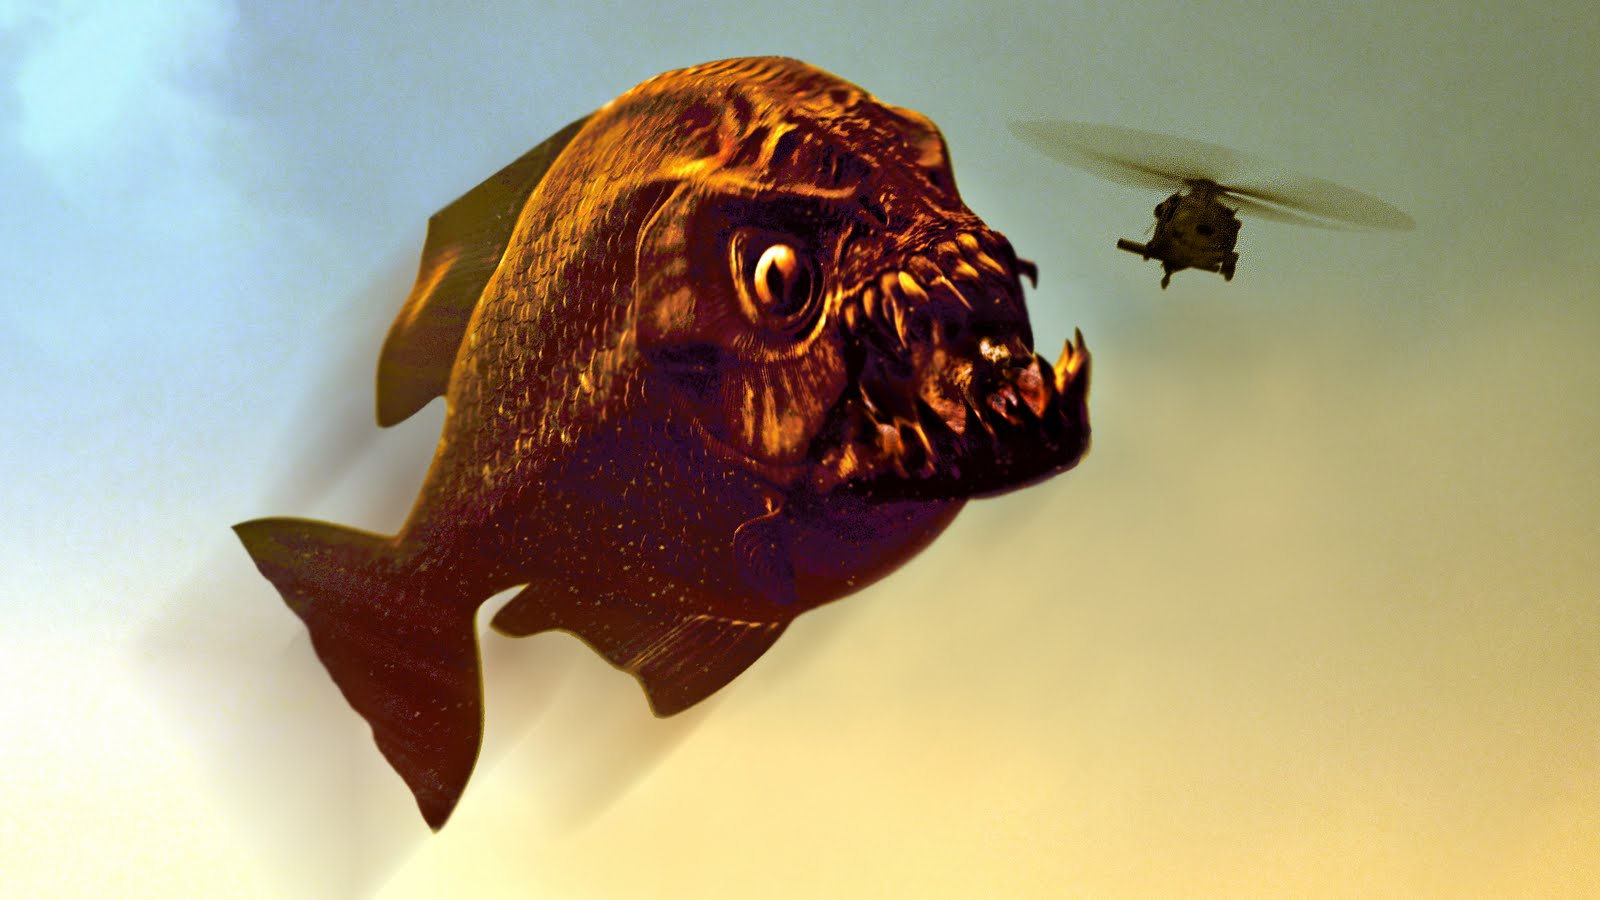 The mega piranha on the attack in Mega Piranha (2010)